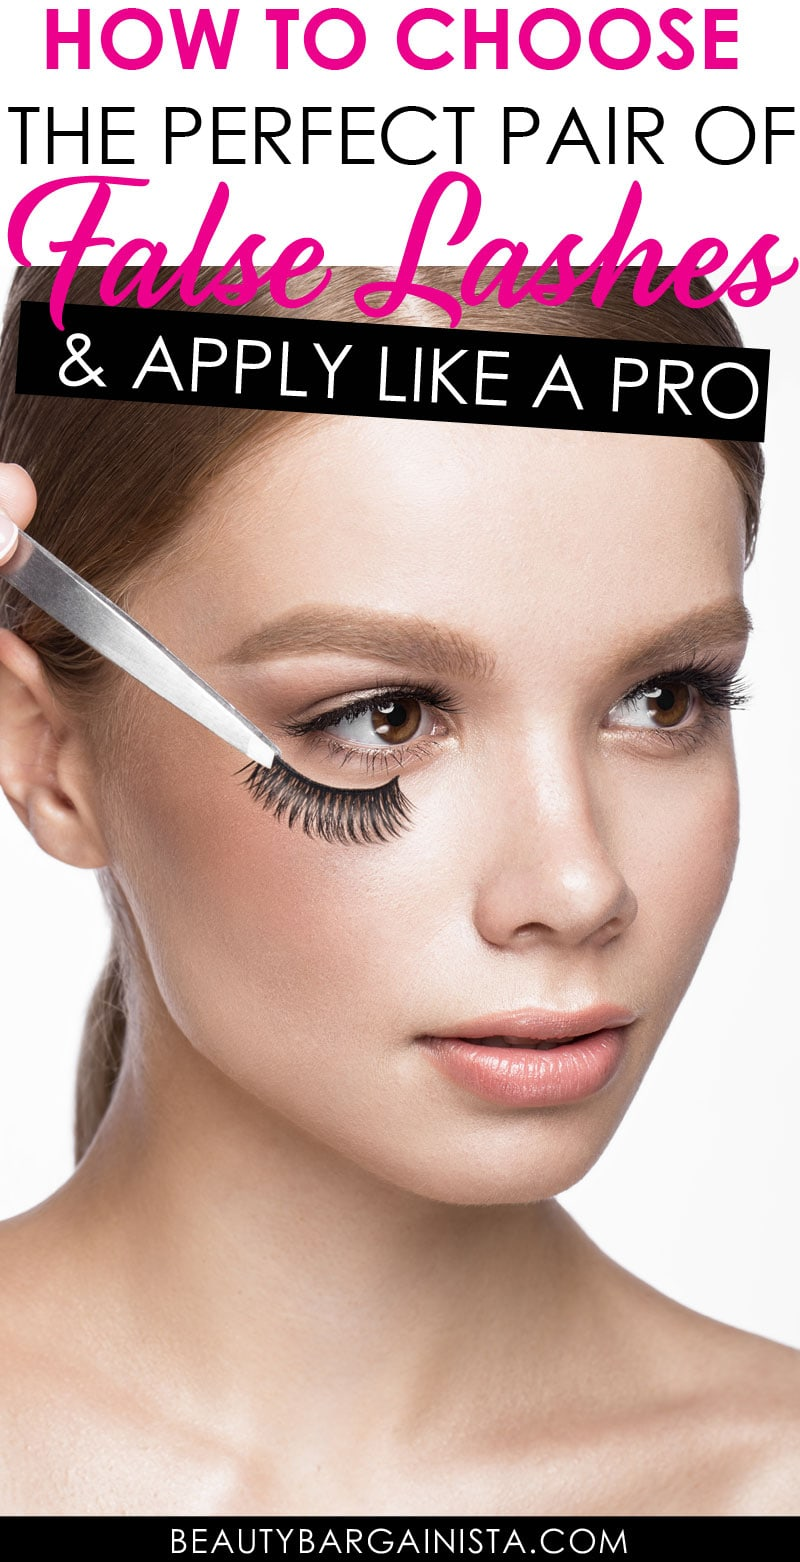 Best False Eyelashes When To Throw Them Away How To Apply Like A Pro